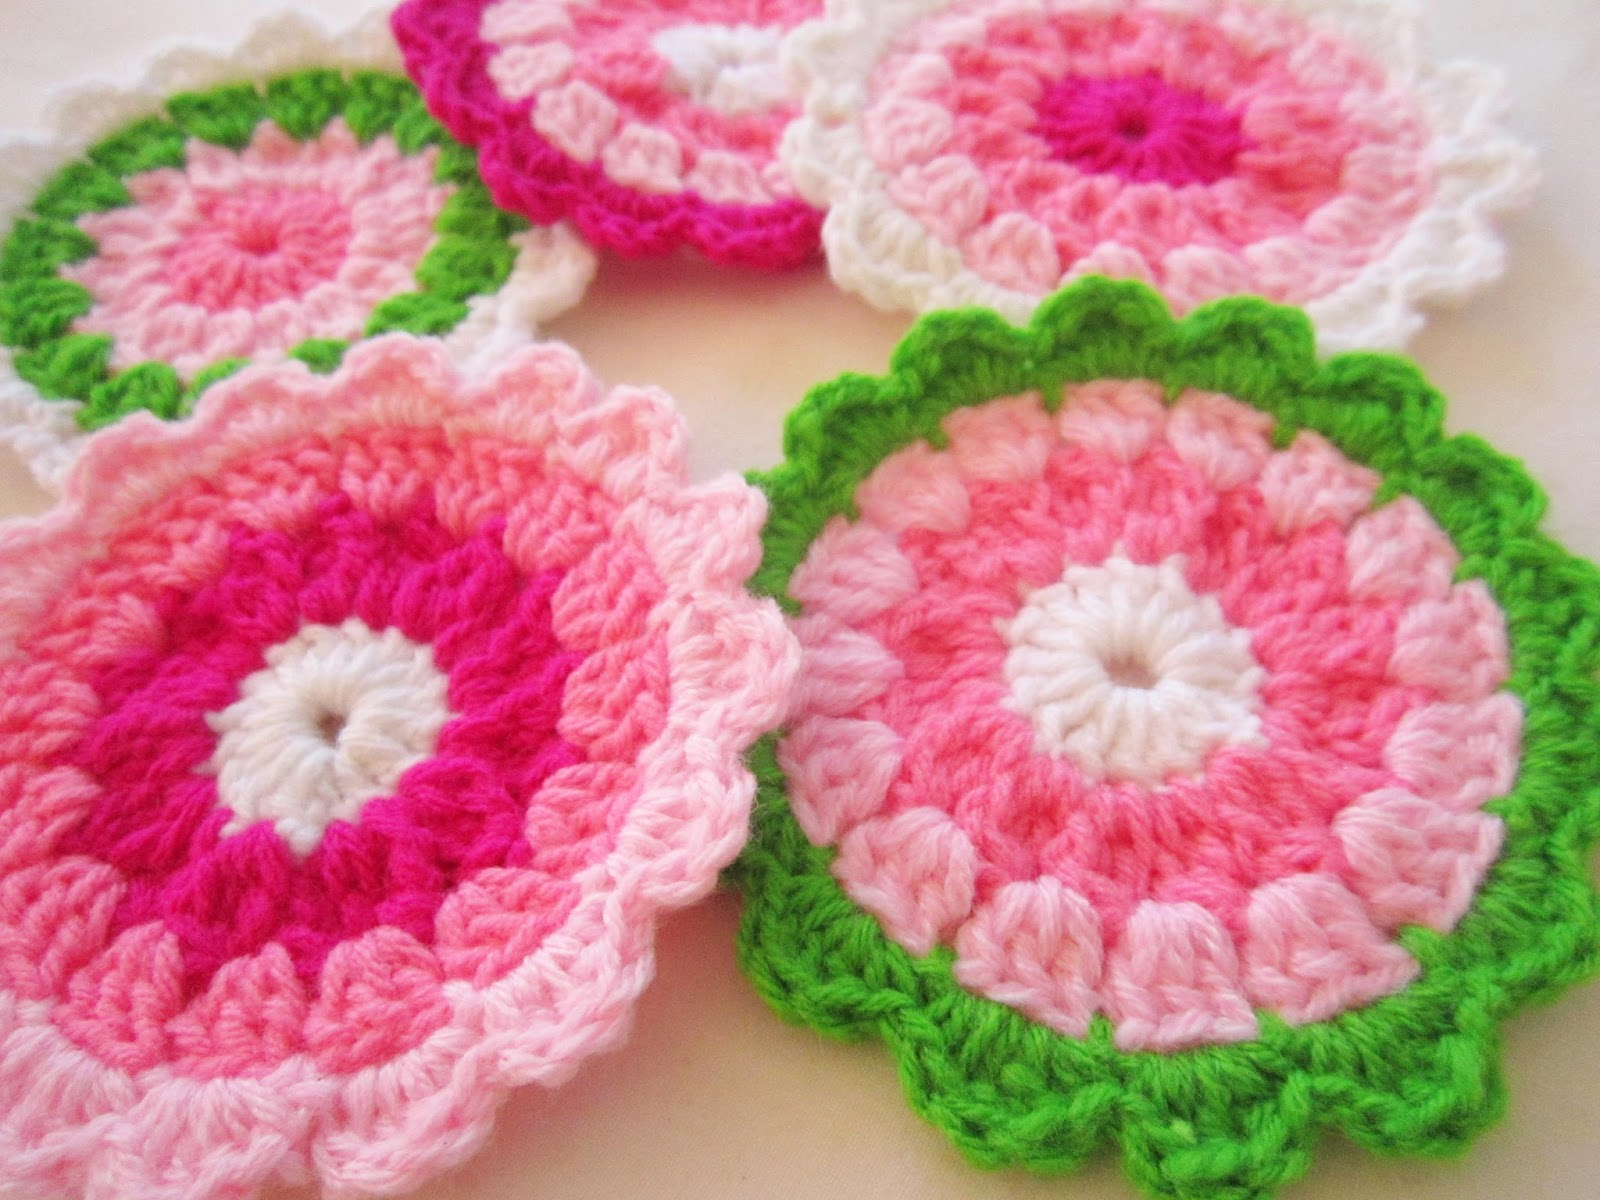 Crochet coasters - A little love everyday!